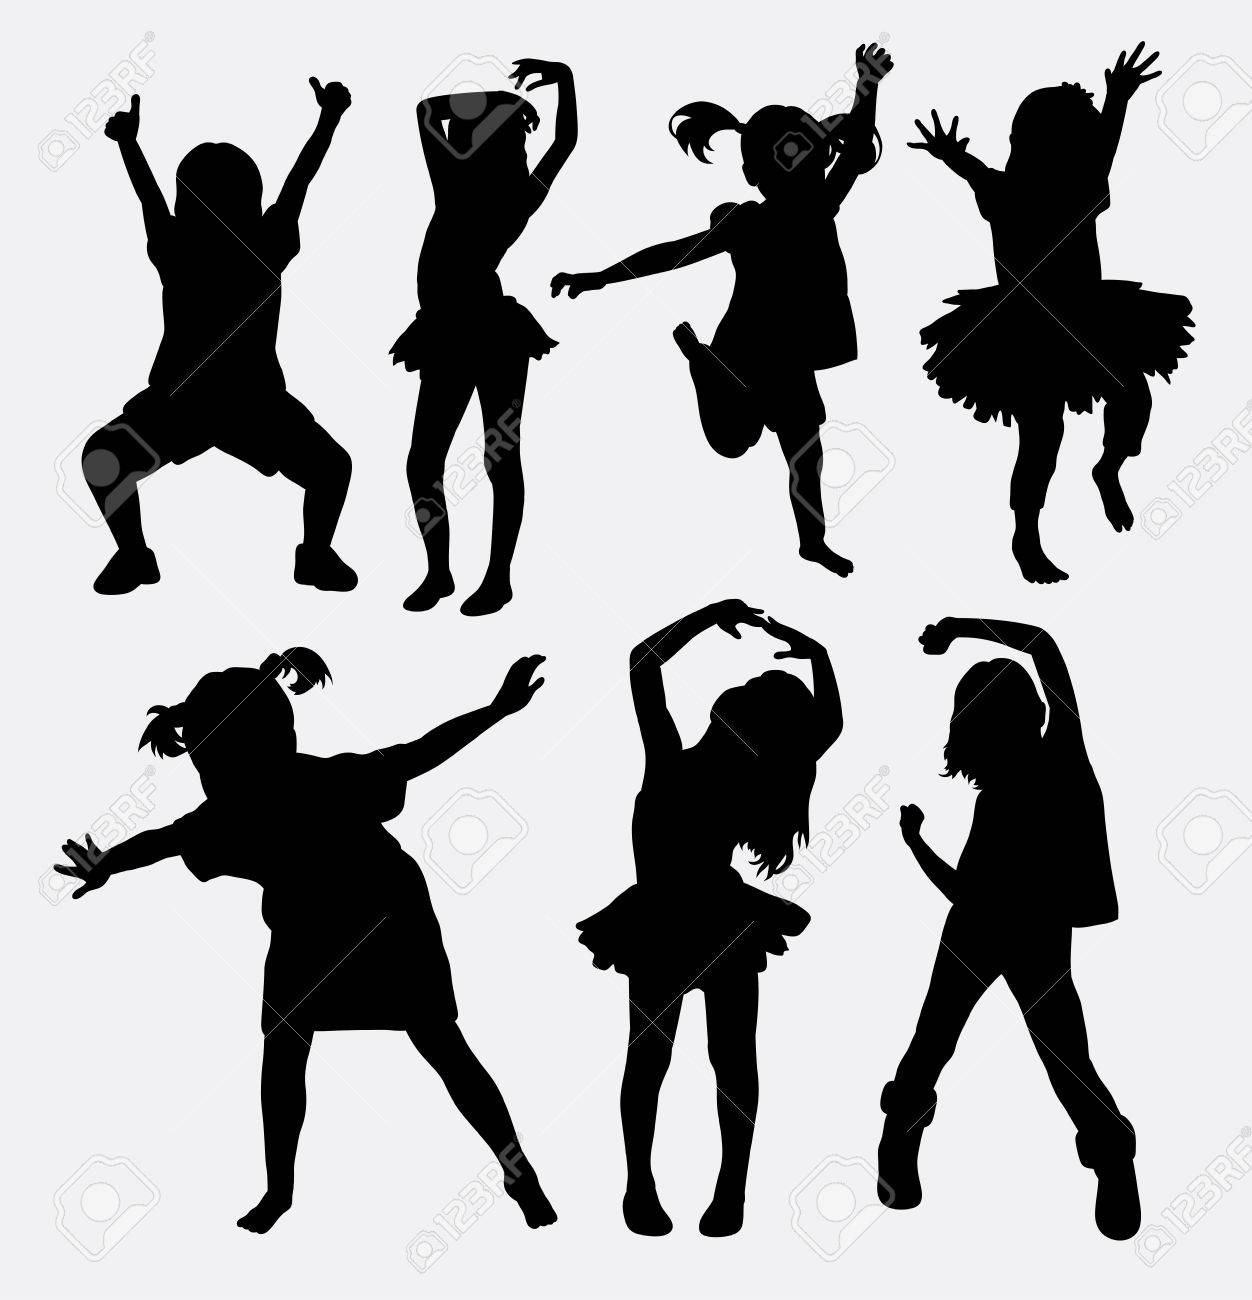 Kid Little Girl Dancing Silhouettes Royalty Free Cliparts Vectors And Stock Illustration Image 46756745